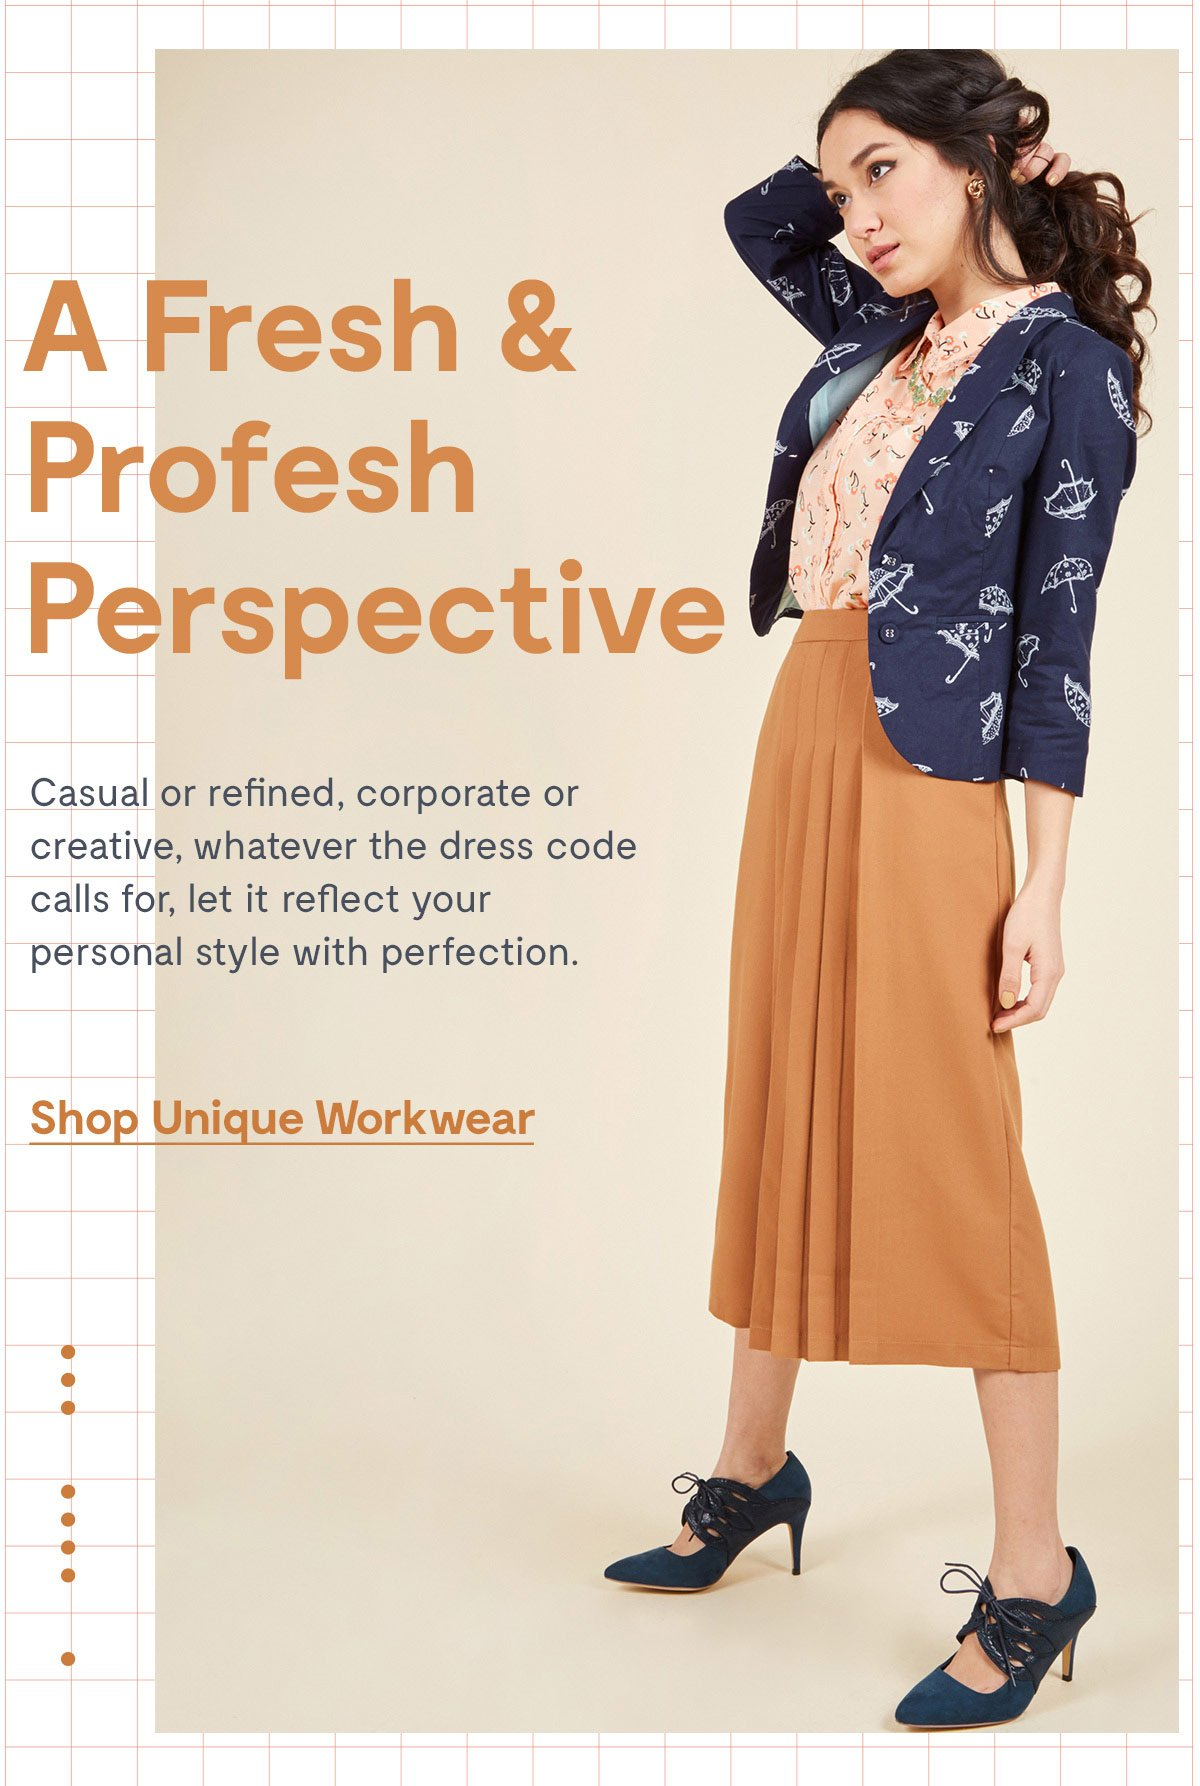 A Fresh & Profesh Perspective          Casual or refined, corporate or creative, whatever the dress code calls for, let it reflect your personal style with perfection.           Shop Unique Workwear >>